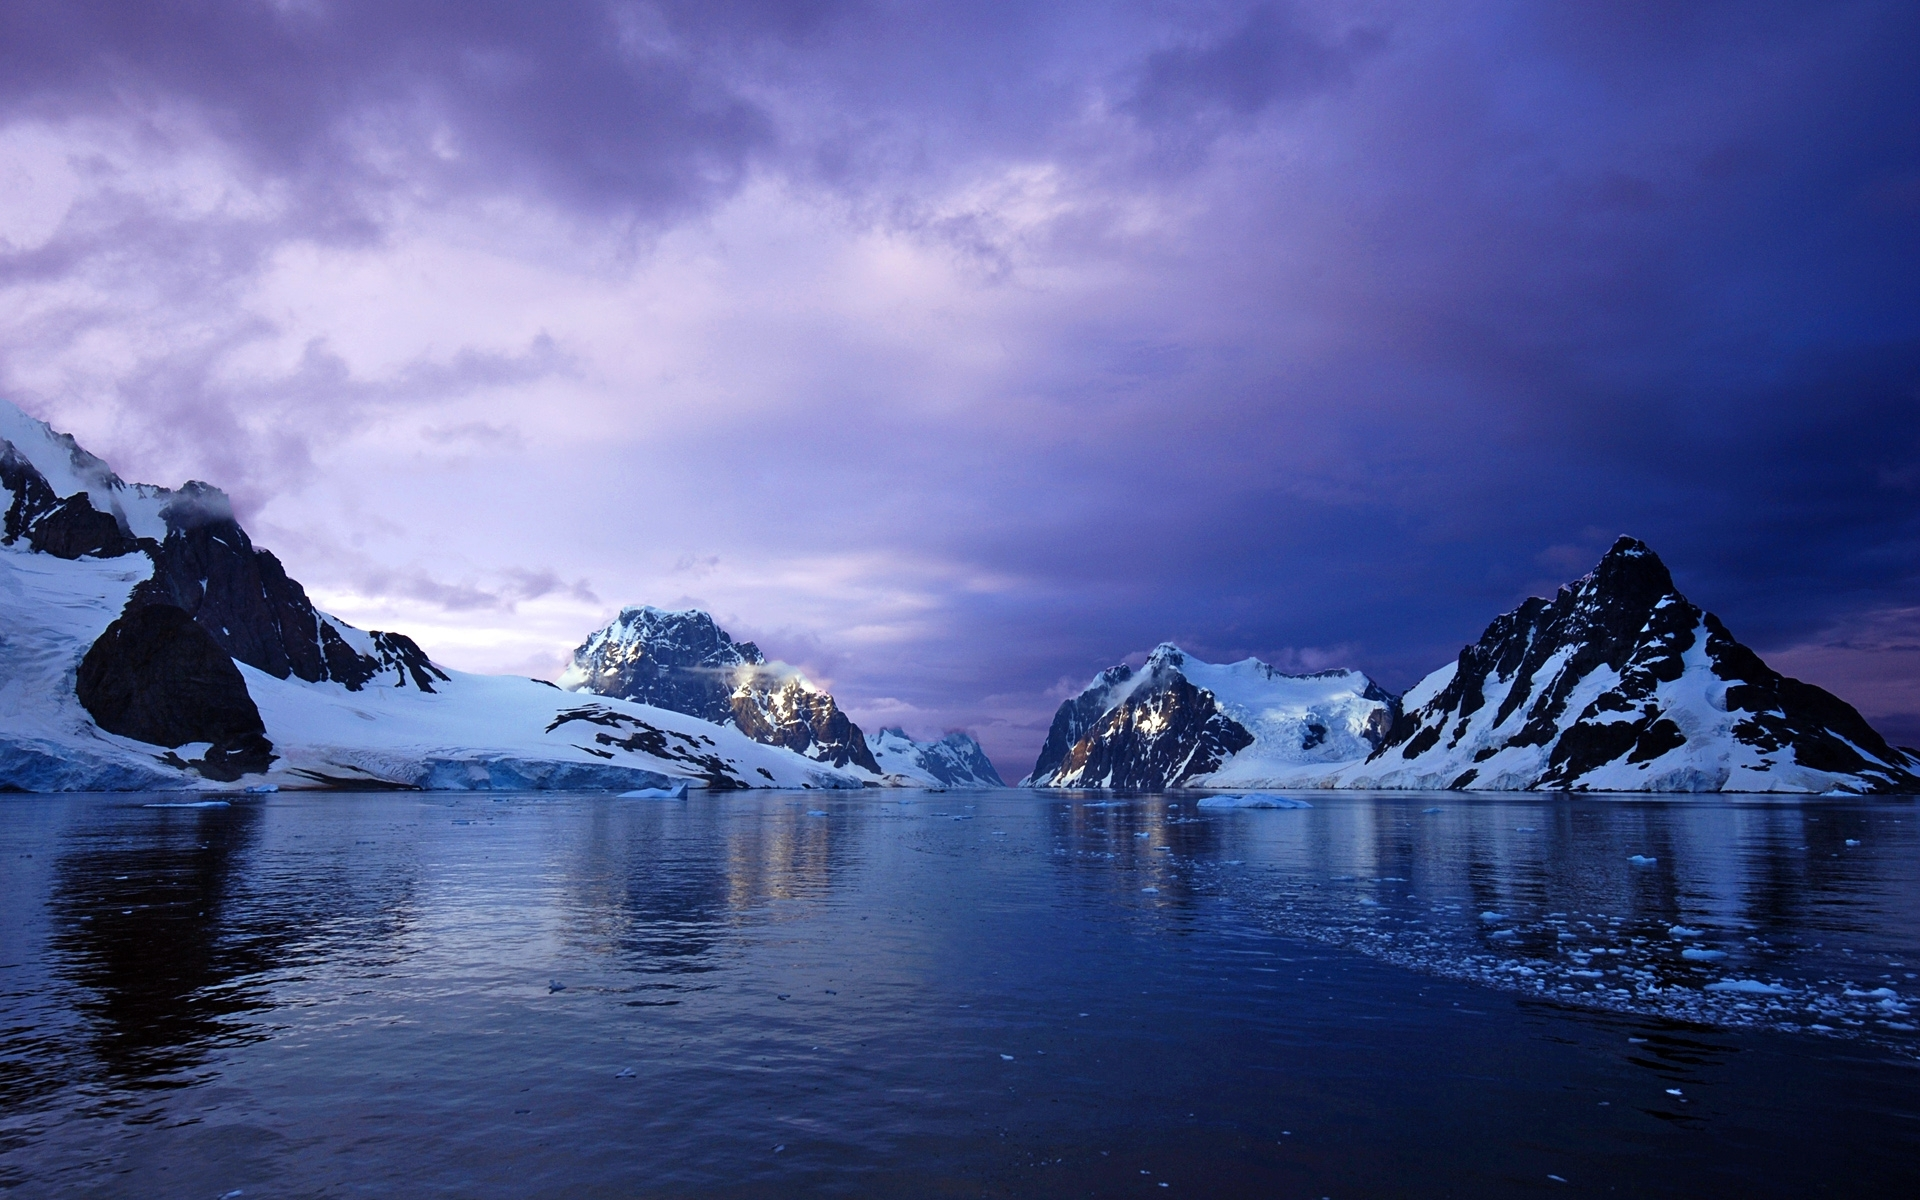 antarctica high definition desktop wallpaper - hd wallpapers